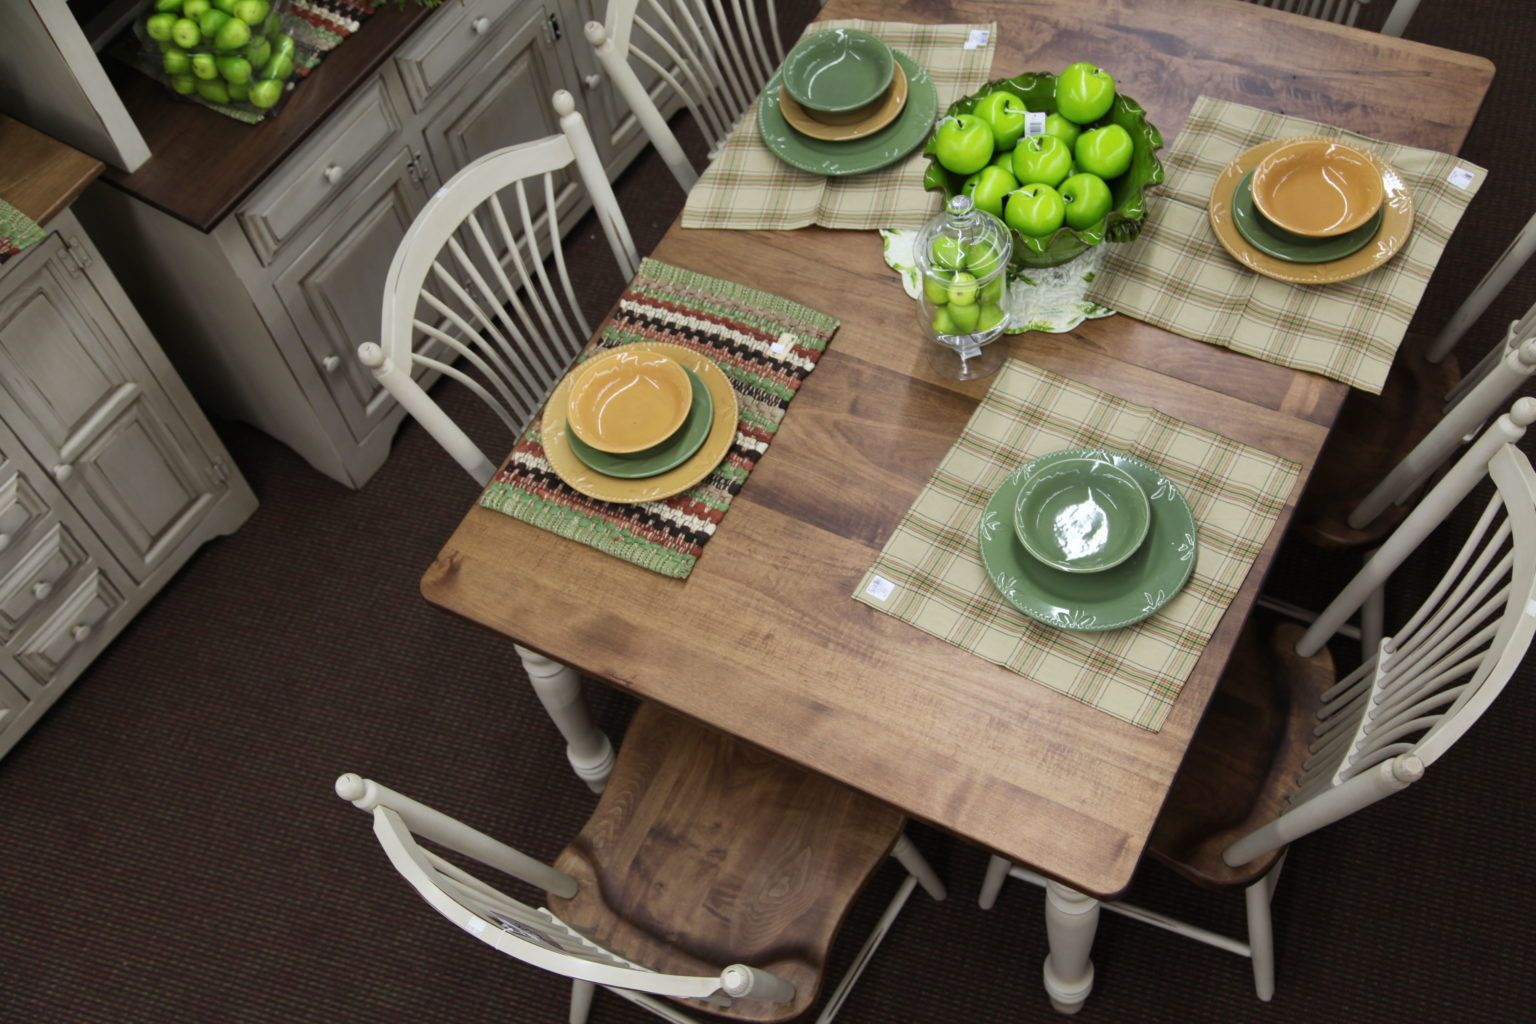 How To Pick The Perfect Table Part 2 Peaceful Valley Furniture Blog Furniture Table Table Parts